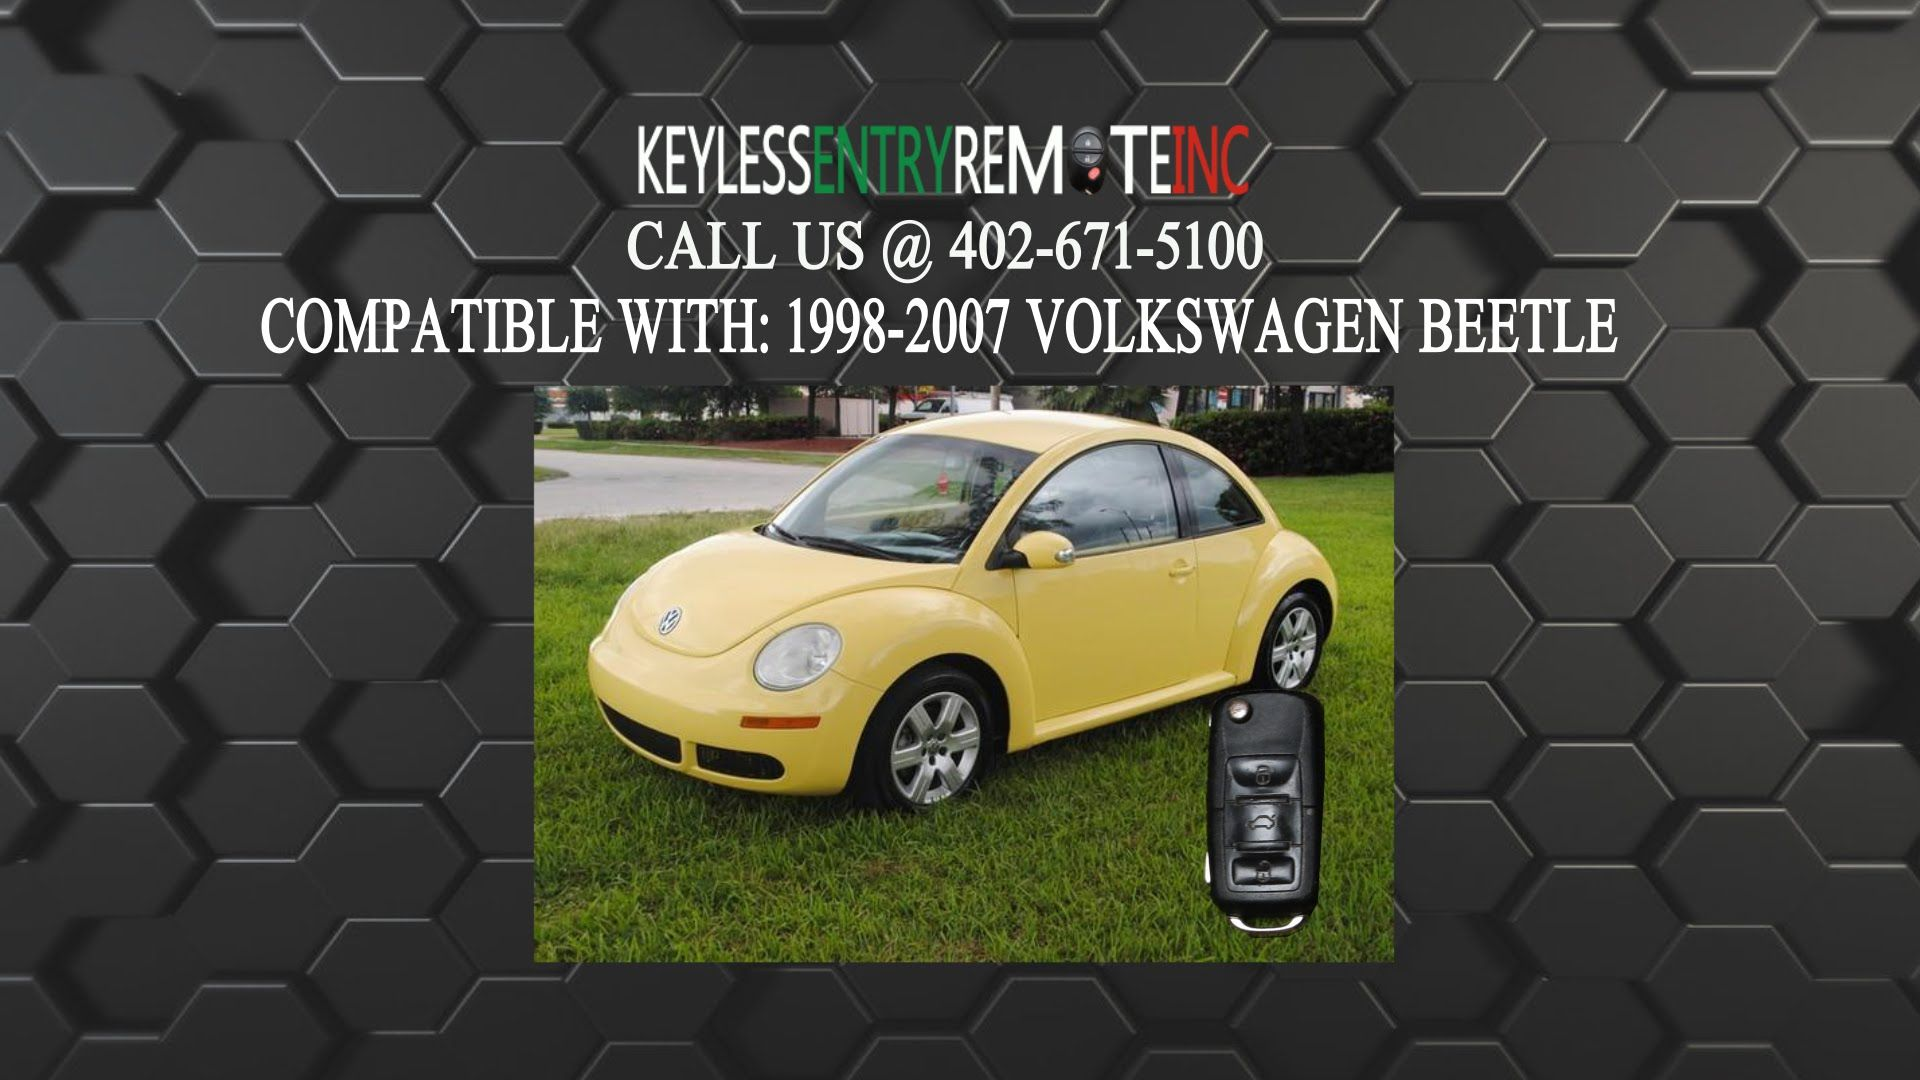 How To Replace Volkswagen New Beetle Key Fob Battery 1998